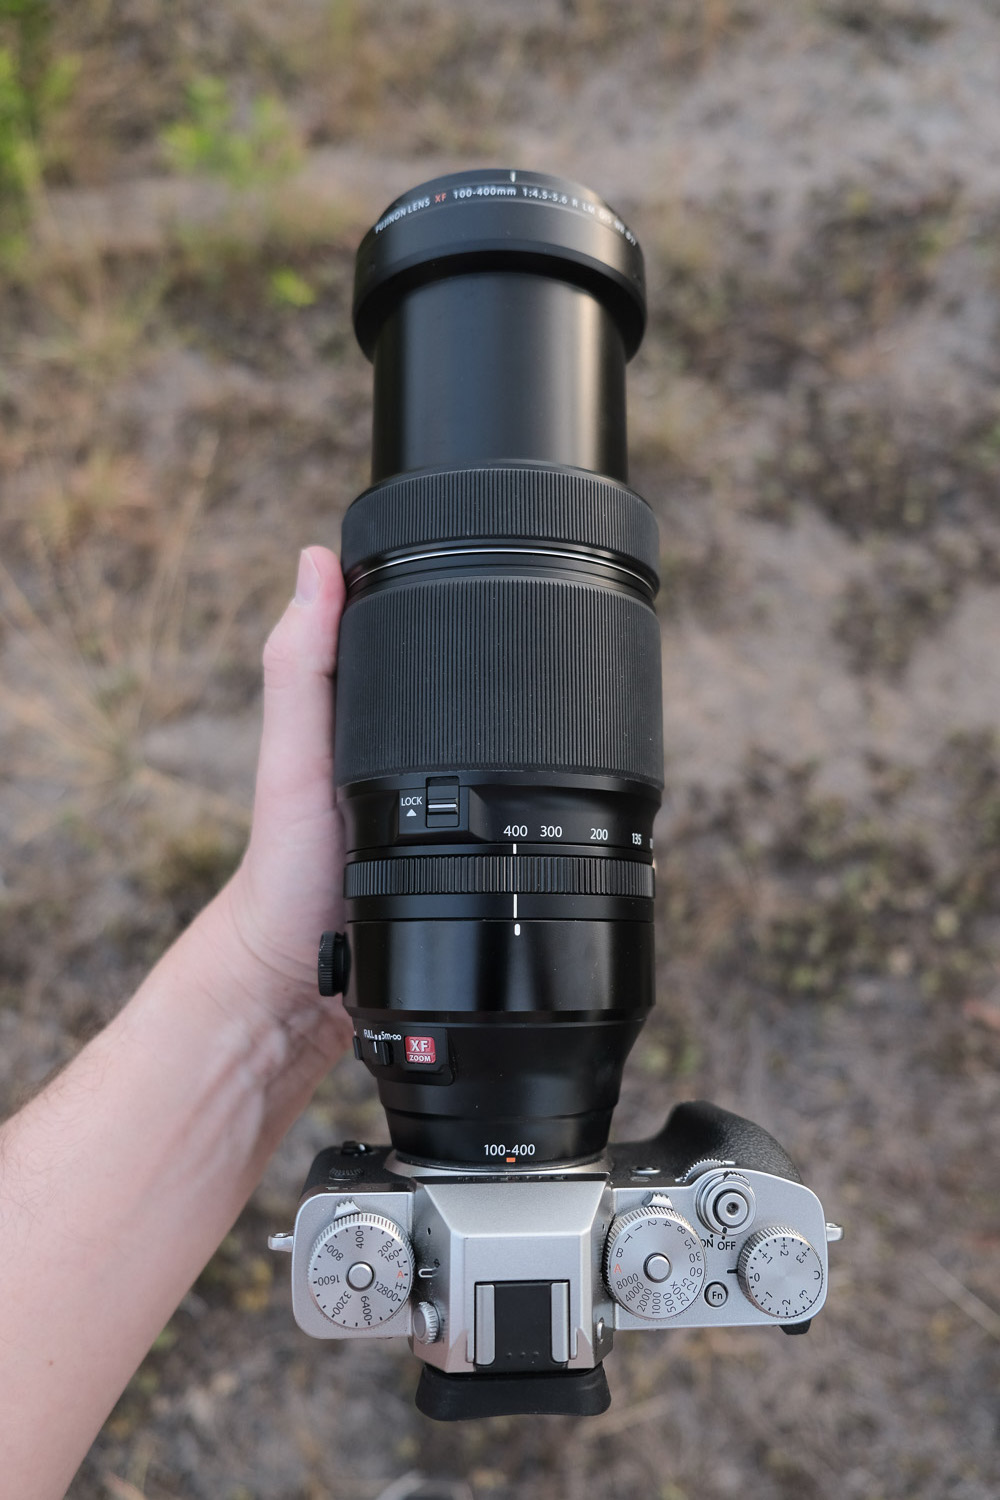 fujifilm-fujinon-XF-100-400mm-lens-review